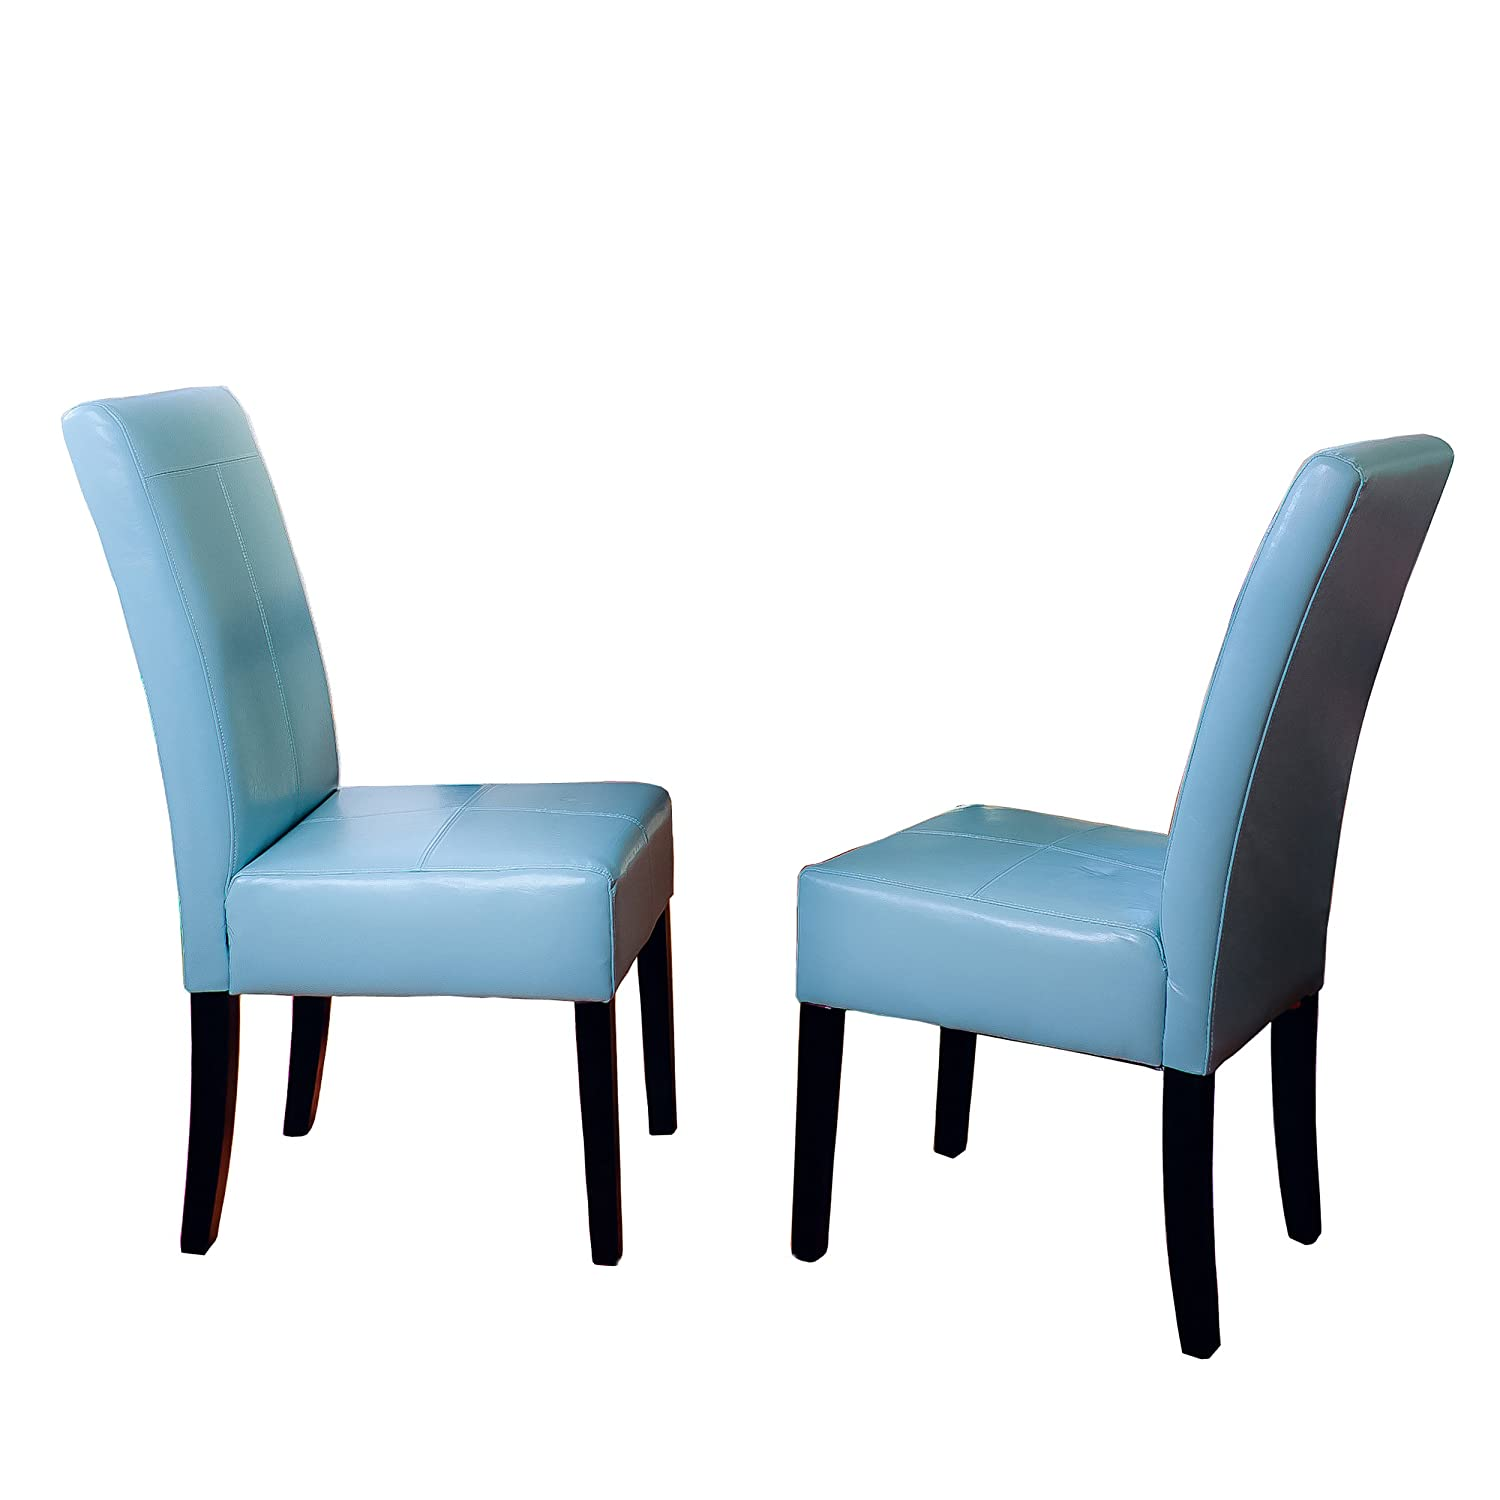 Best Faux Leather Dining Chair Seekyt : 81eRUCDyrTLSL1500 from www.seekyt.com size 1500 x 1500 jpeg 109kB